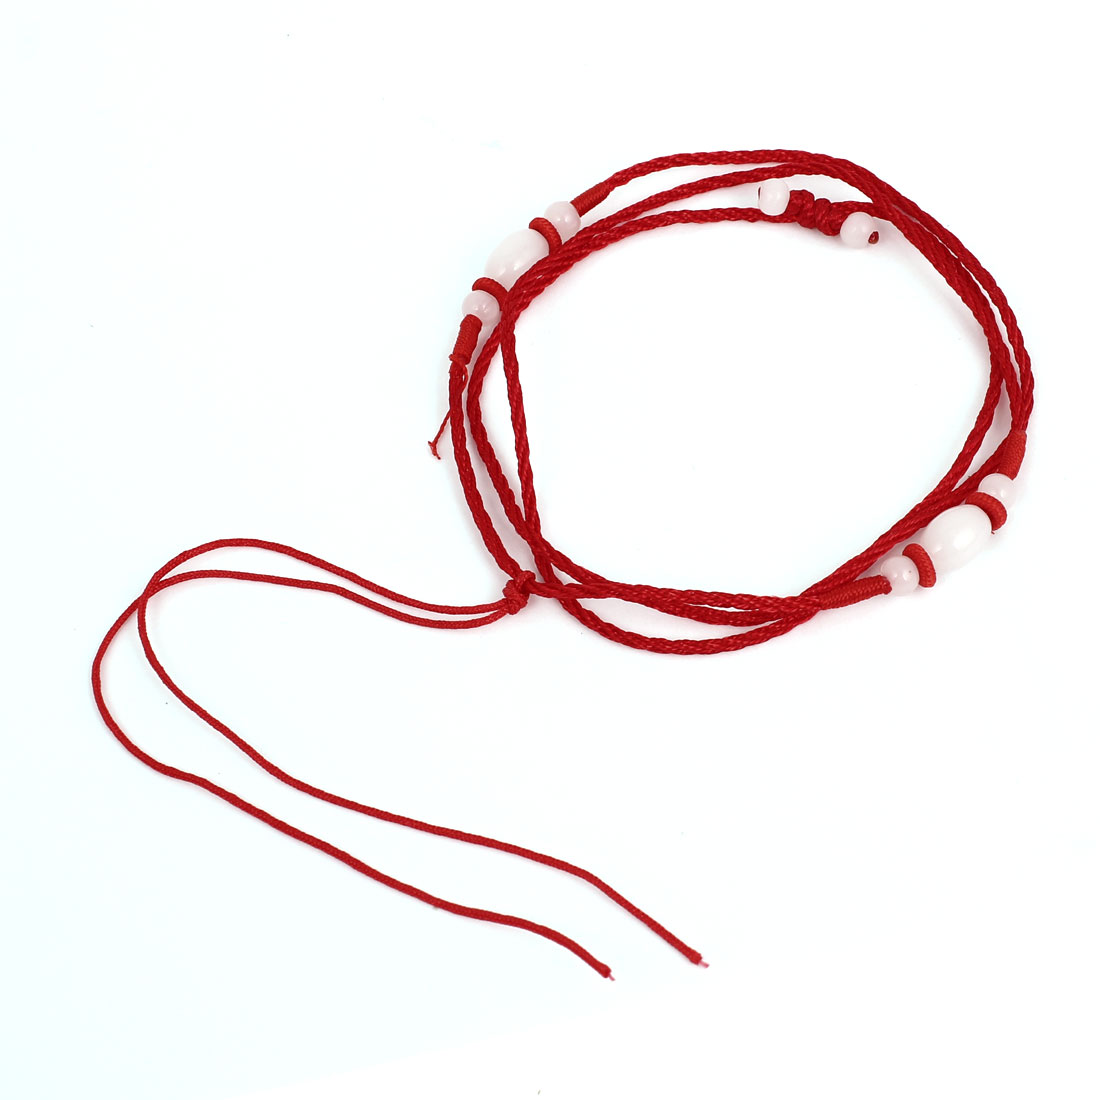 Red Nylon Handmade Braided Beaded Decor Adjustable Necklace String